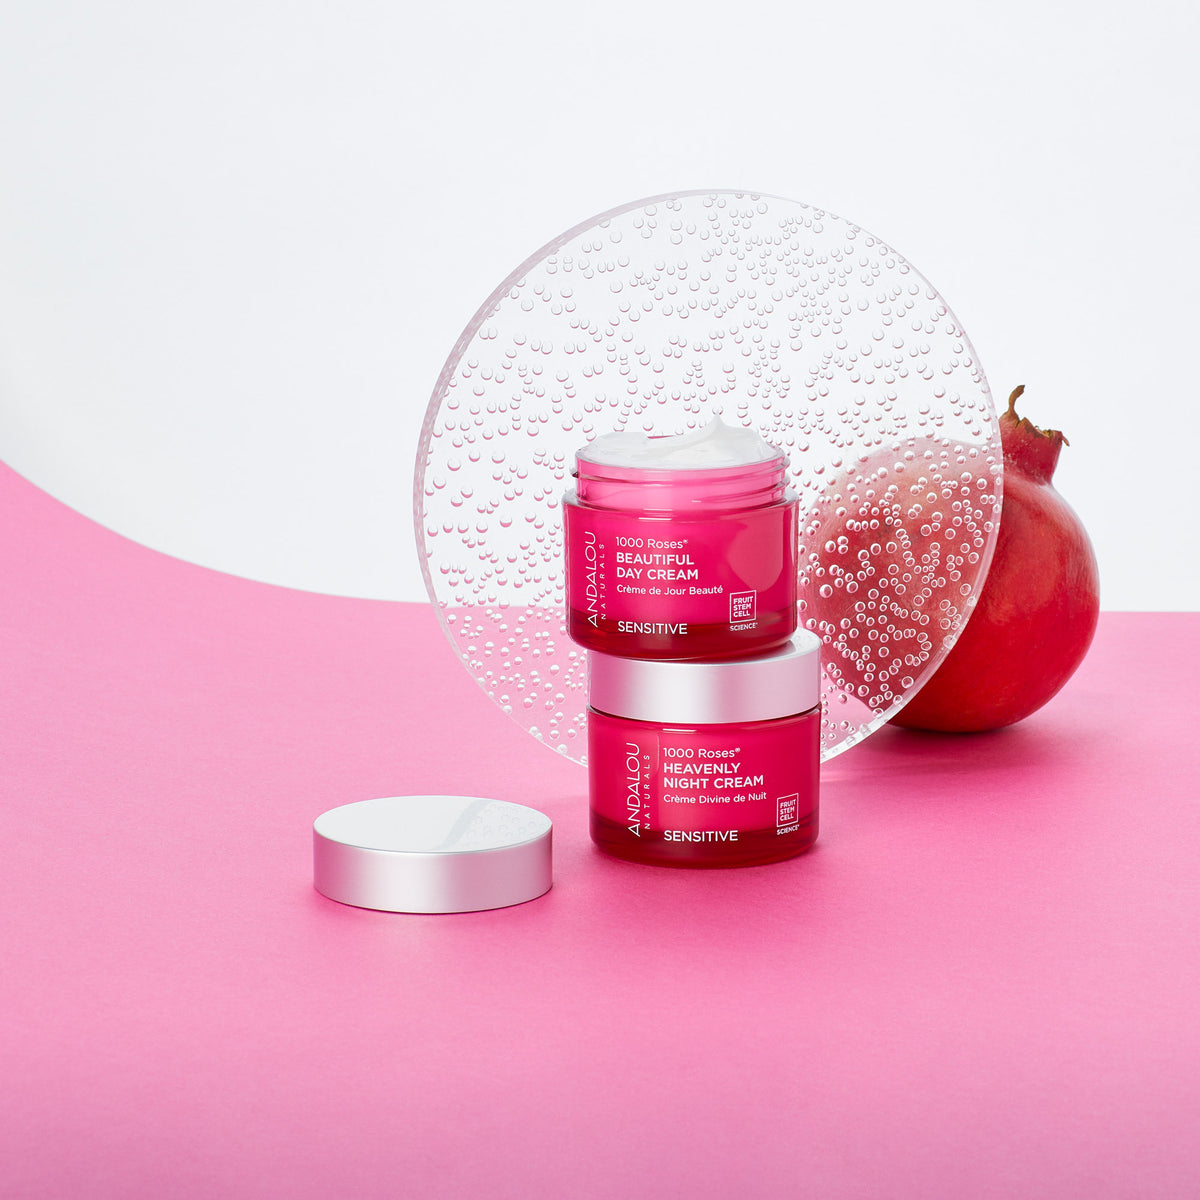 Sensitive 1000 Roses Beautiful Day Cream